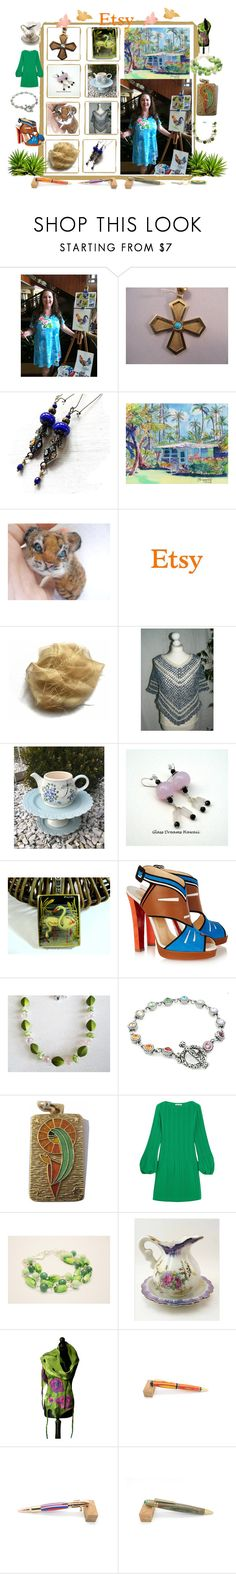 """""""Etsy ... """"Delight"""""""" by sylvia-cameojewels ❤ liked on Polyvore featuring Christian Louboutin and Maje"""